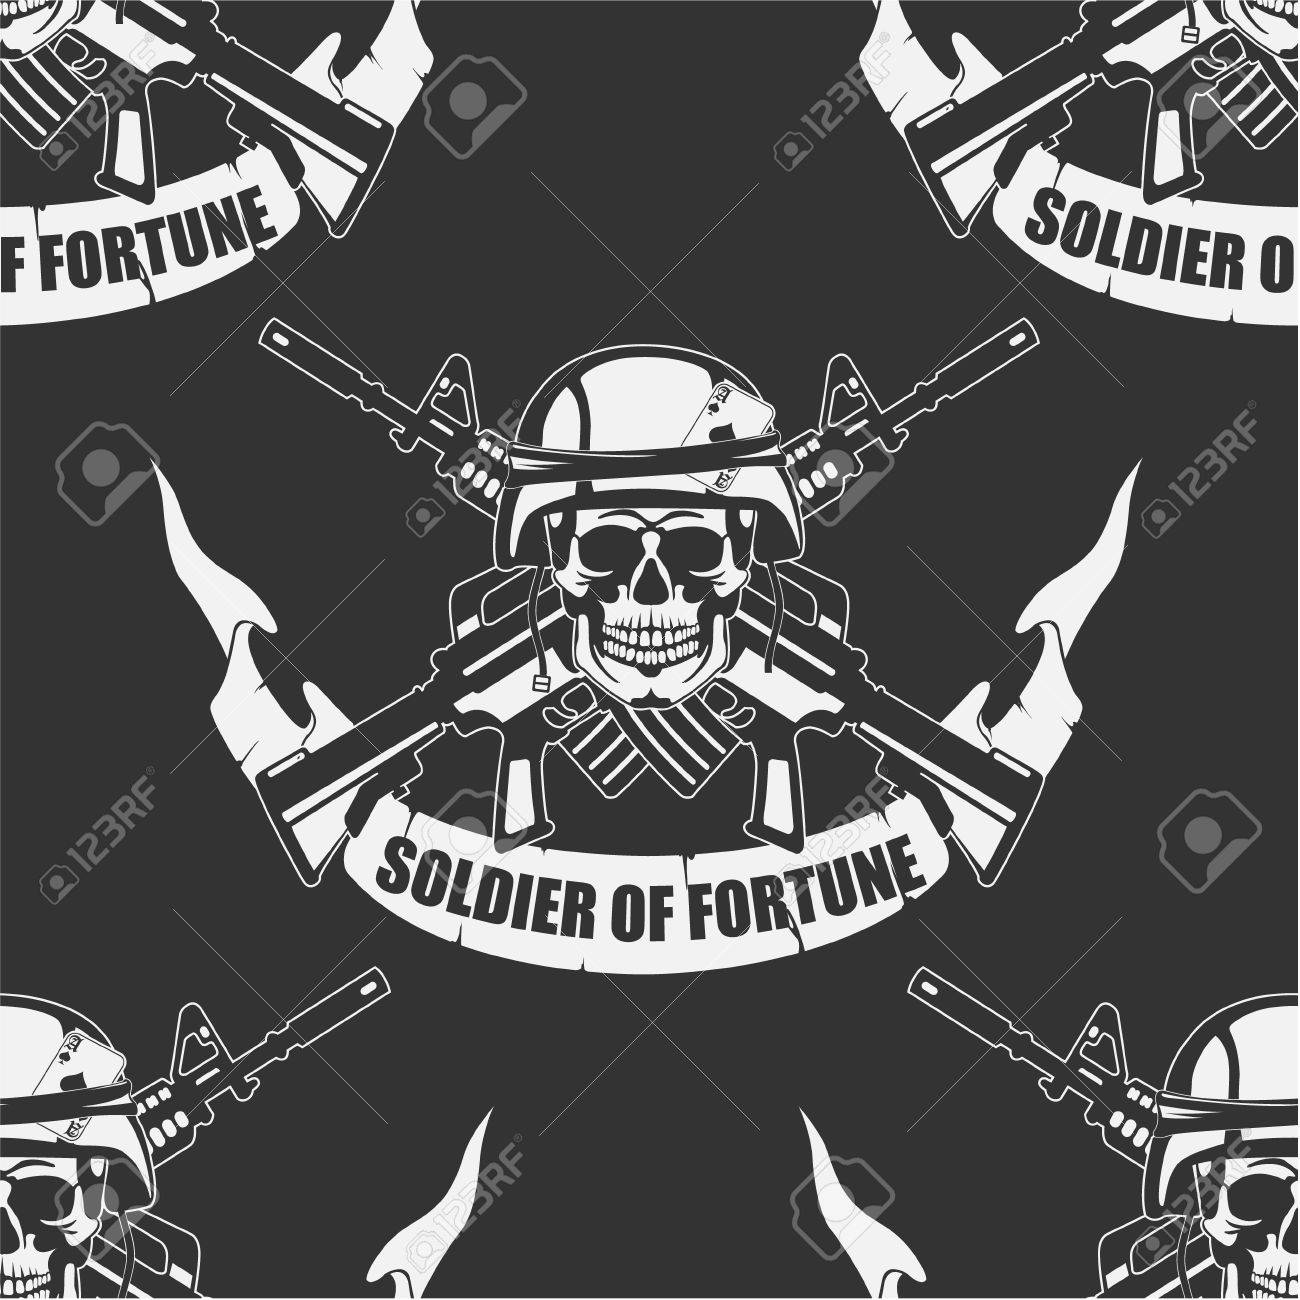 Army Background Vector The Vector Image Army